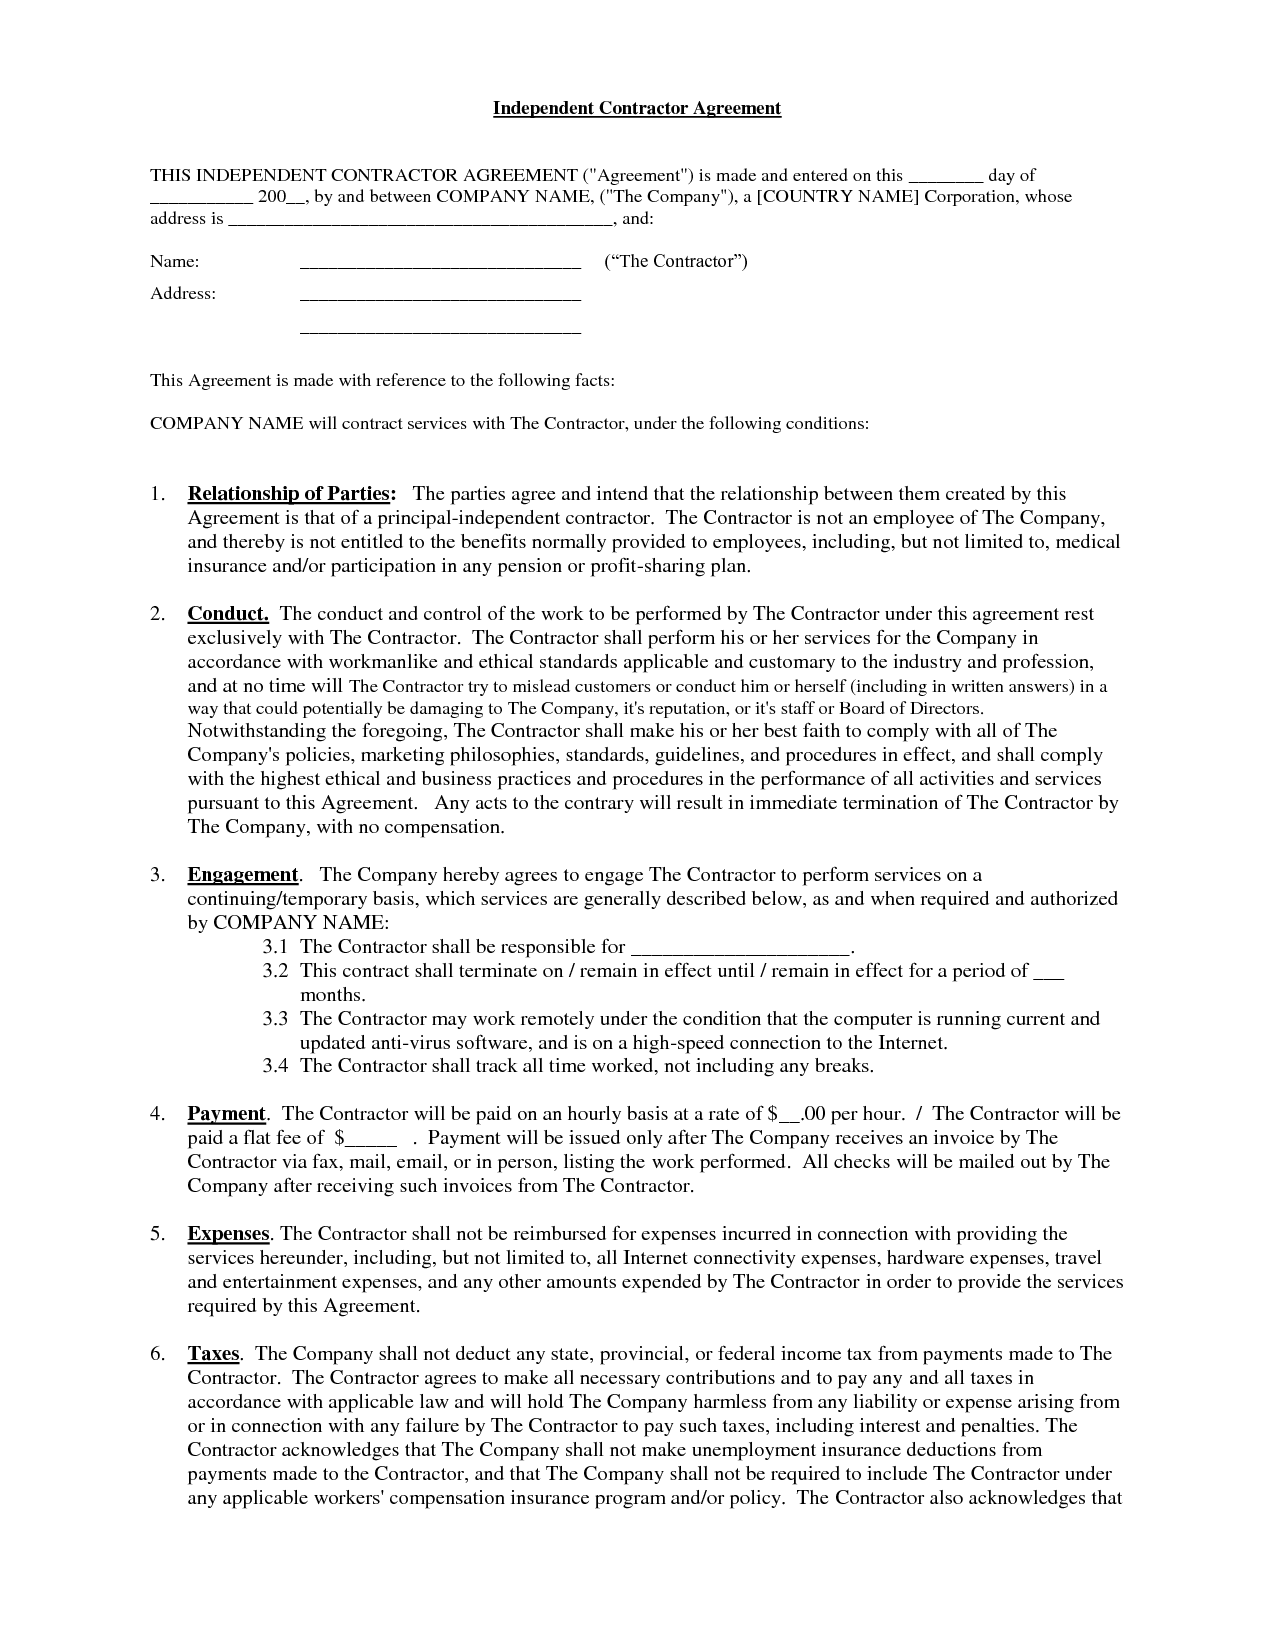 independent contractor agreement sample info independent contractor contract by brittanygibbons contractor